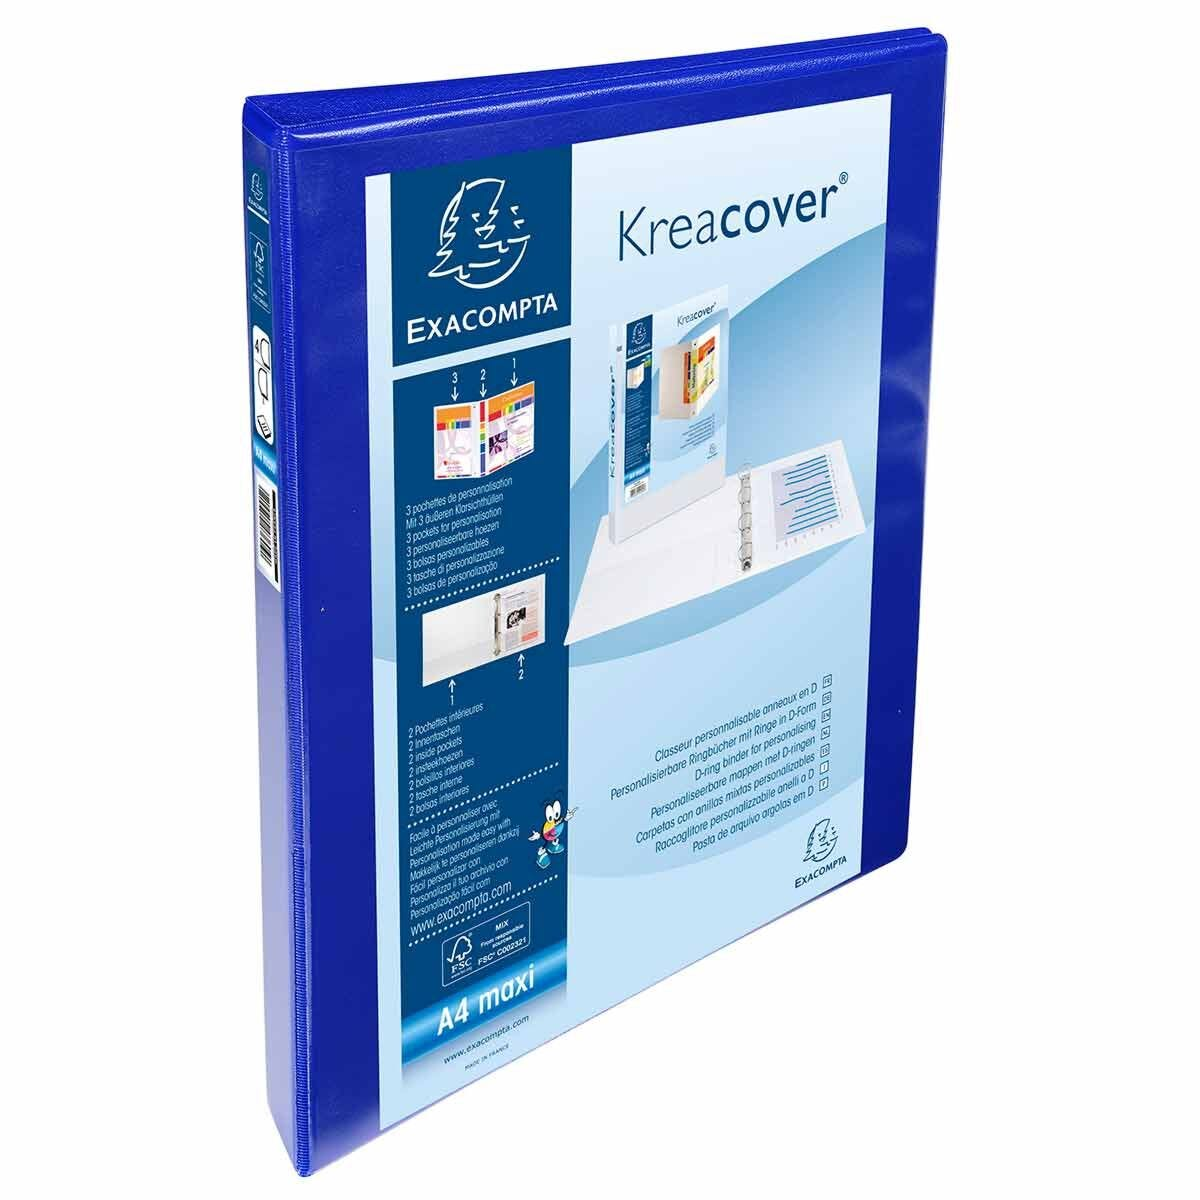 Exacompta Kreacover Personal Ring Binder A4 Plus 4 Rings 15mm 3 Pockets Pack of 10 Red